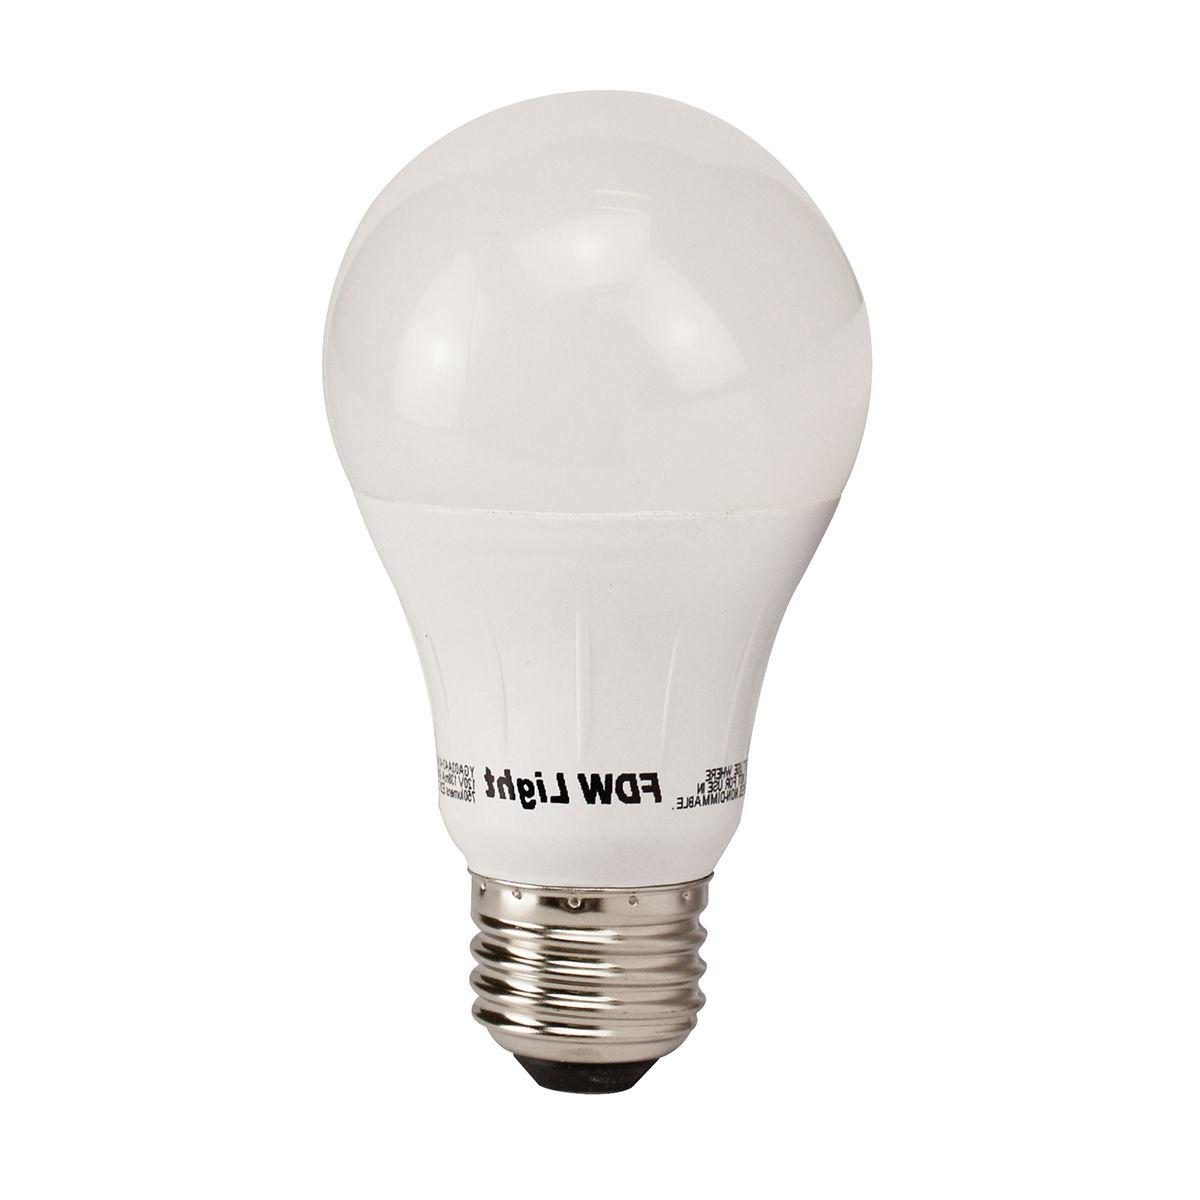 New 60 Watt SlimStyle Bulb White 12